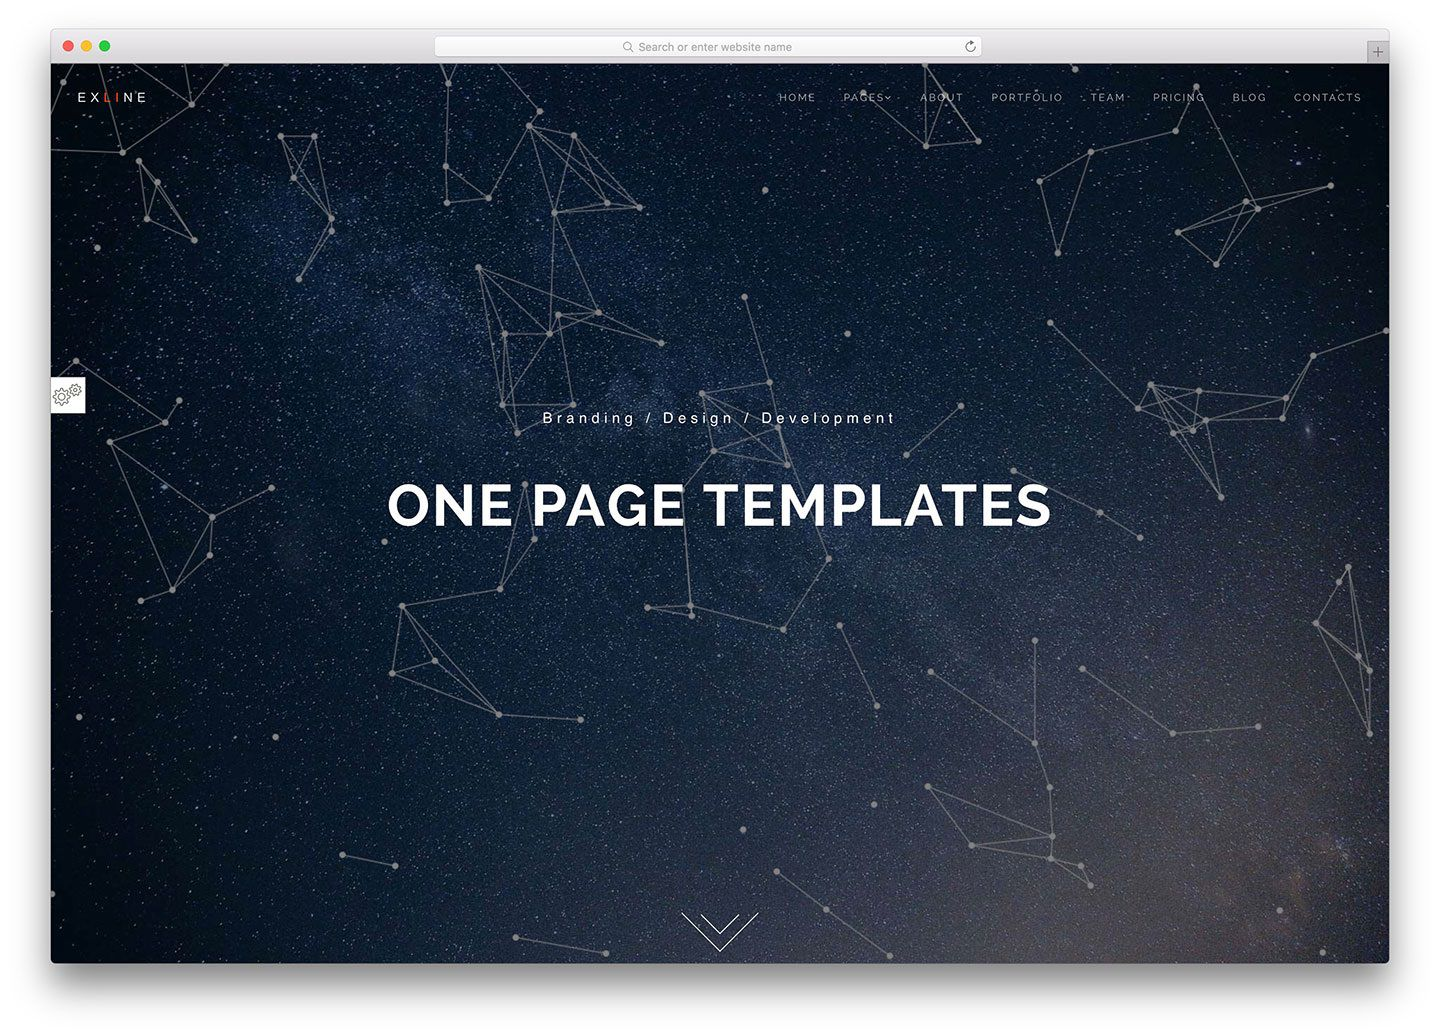 004 Fantastic Download Web Template Html5 Highest Quality  Photography Website Free Logistic BusinesFull